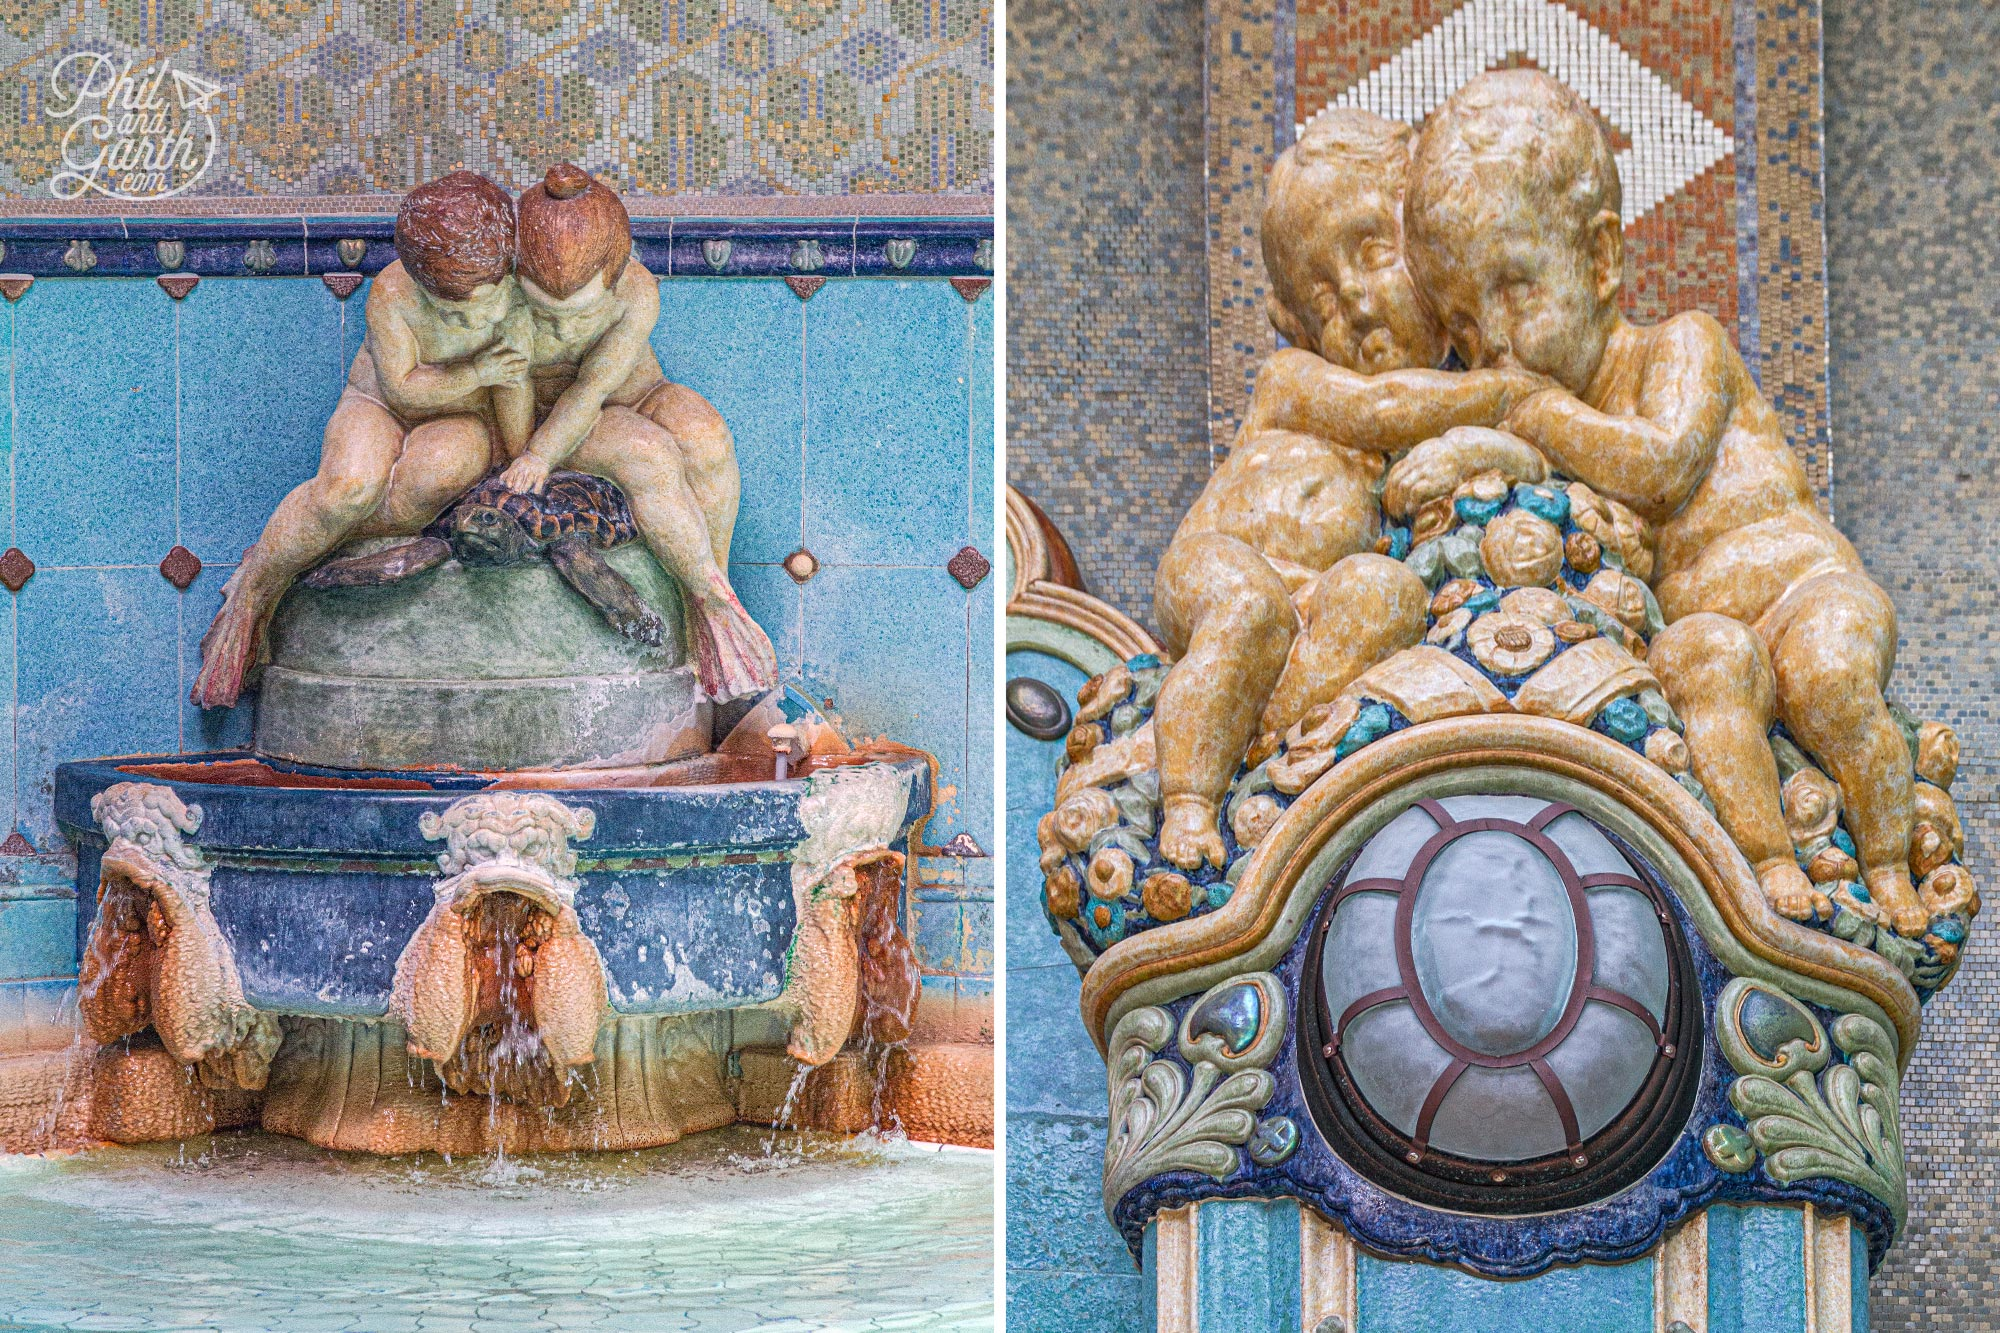 The thermal pools have the best art nouveau features